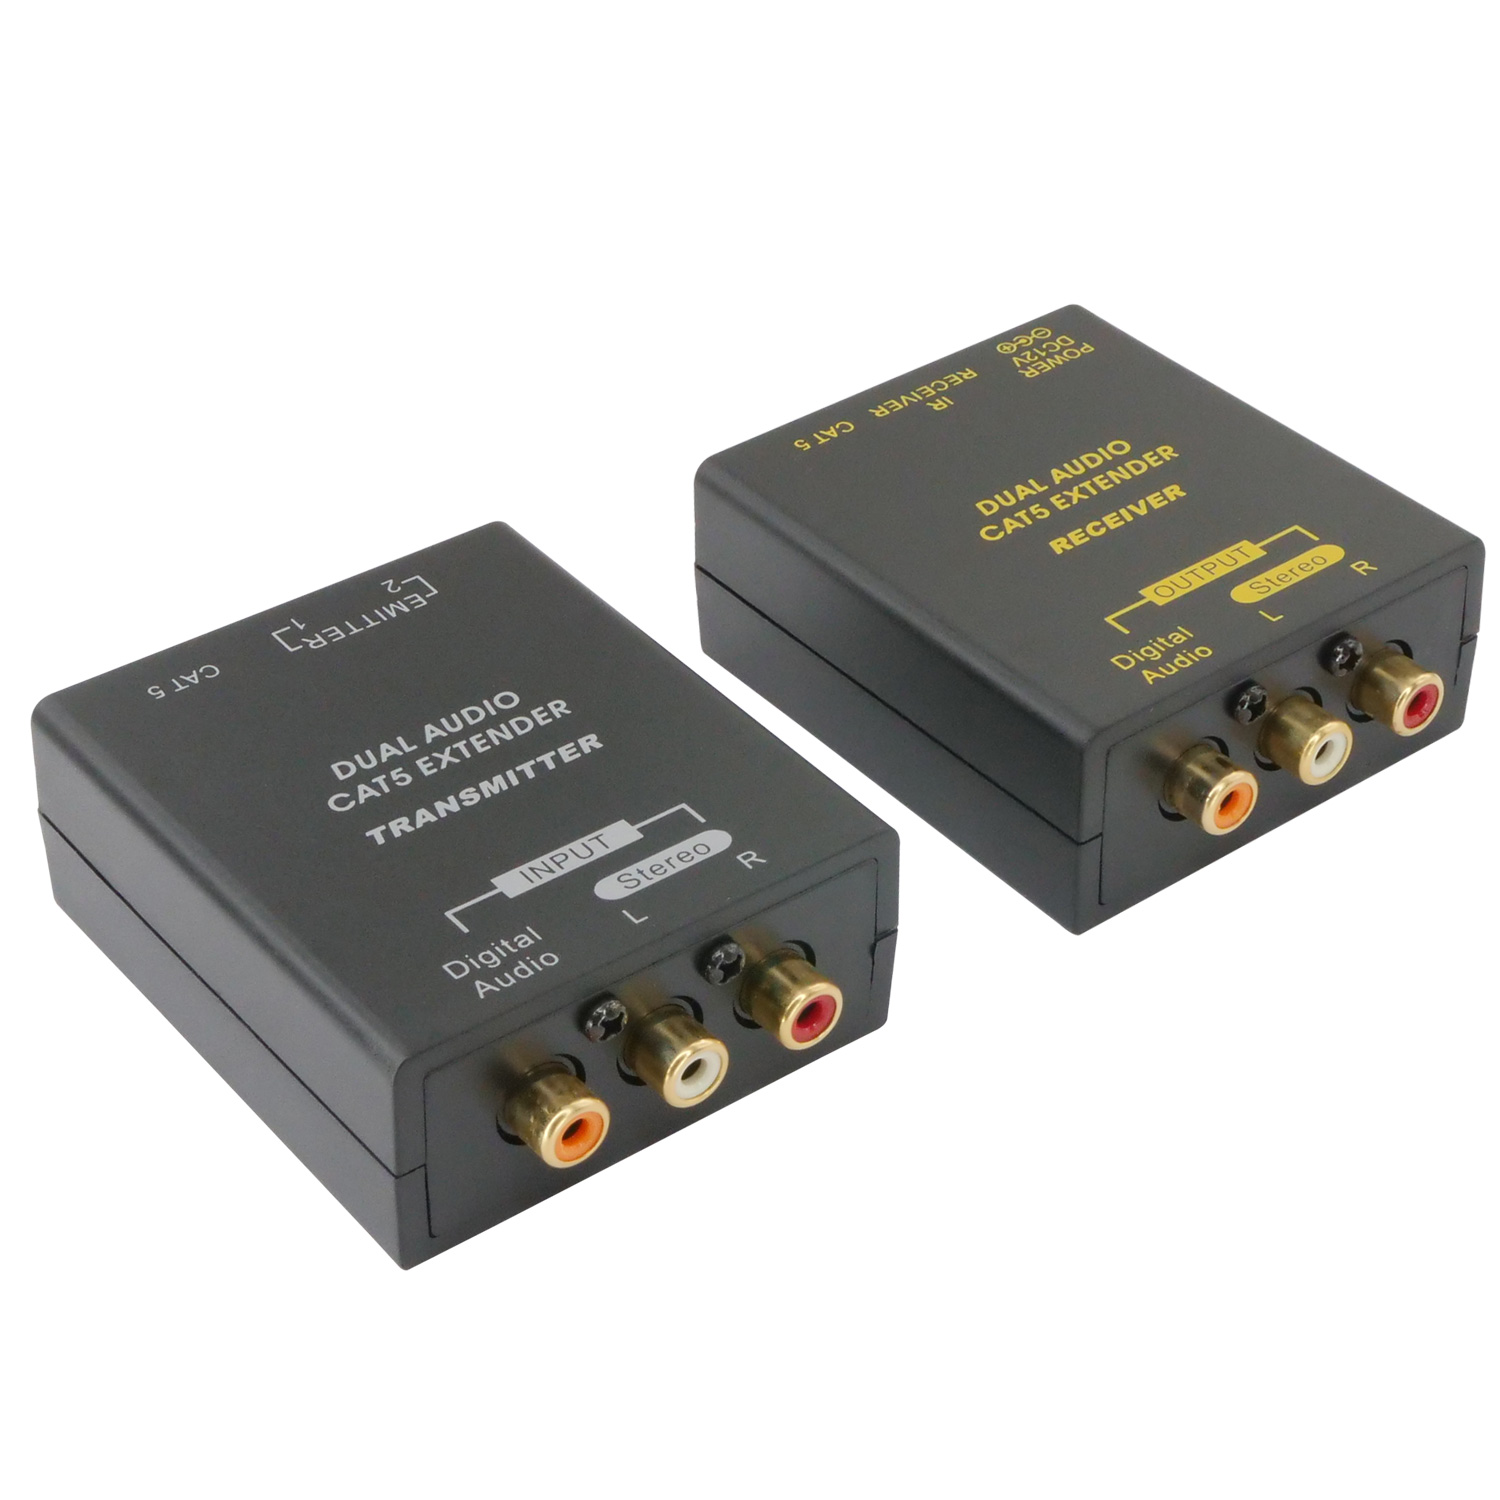 Digital or RCA Audio L/R Extender over RJ45 Ethernet Cable with IR